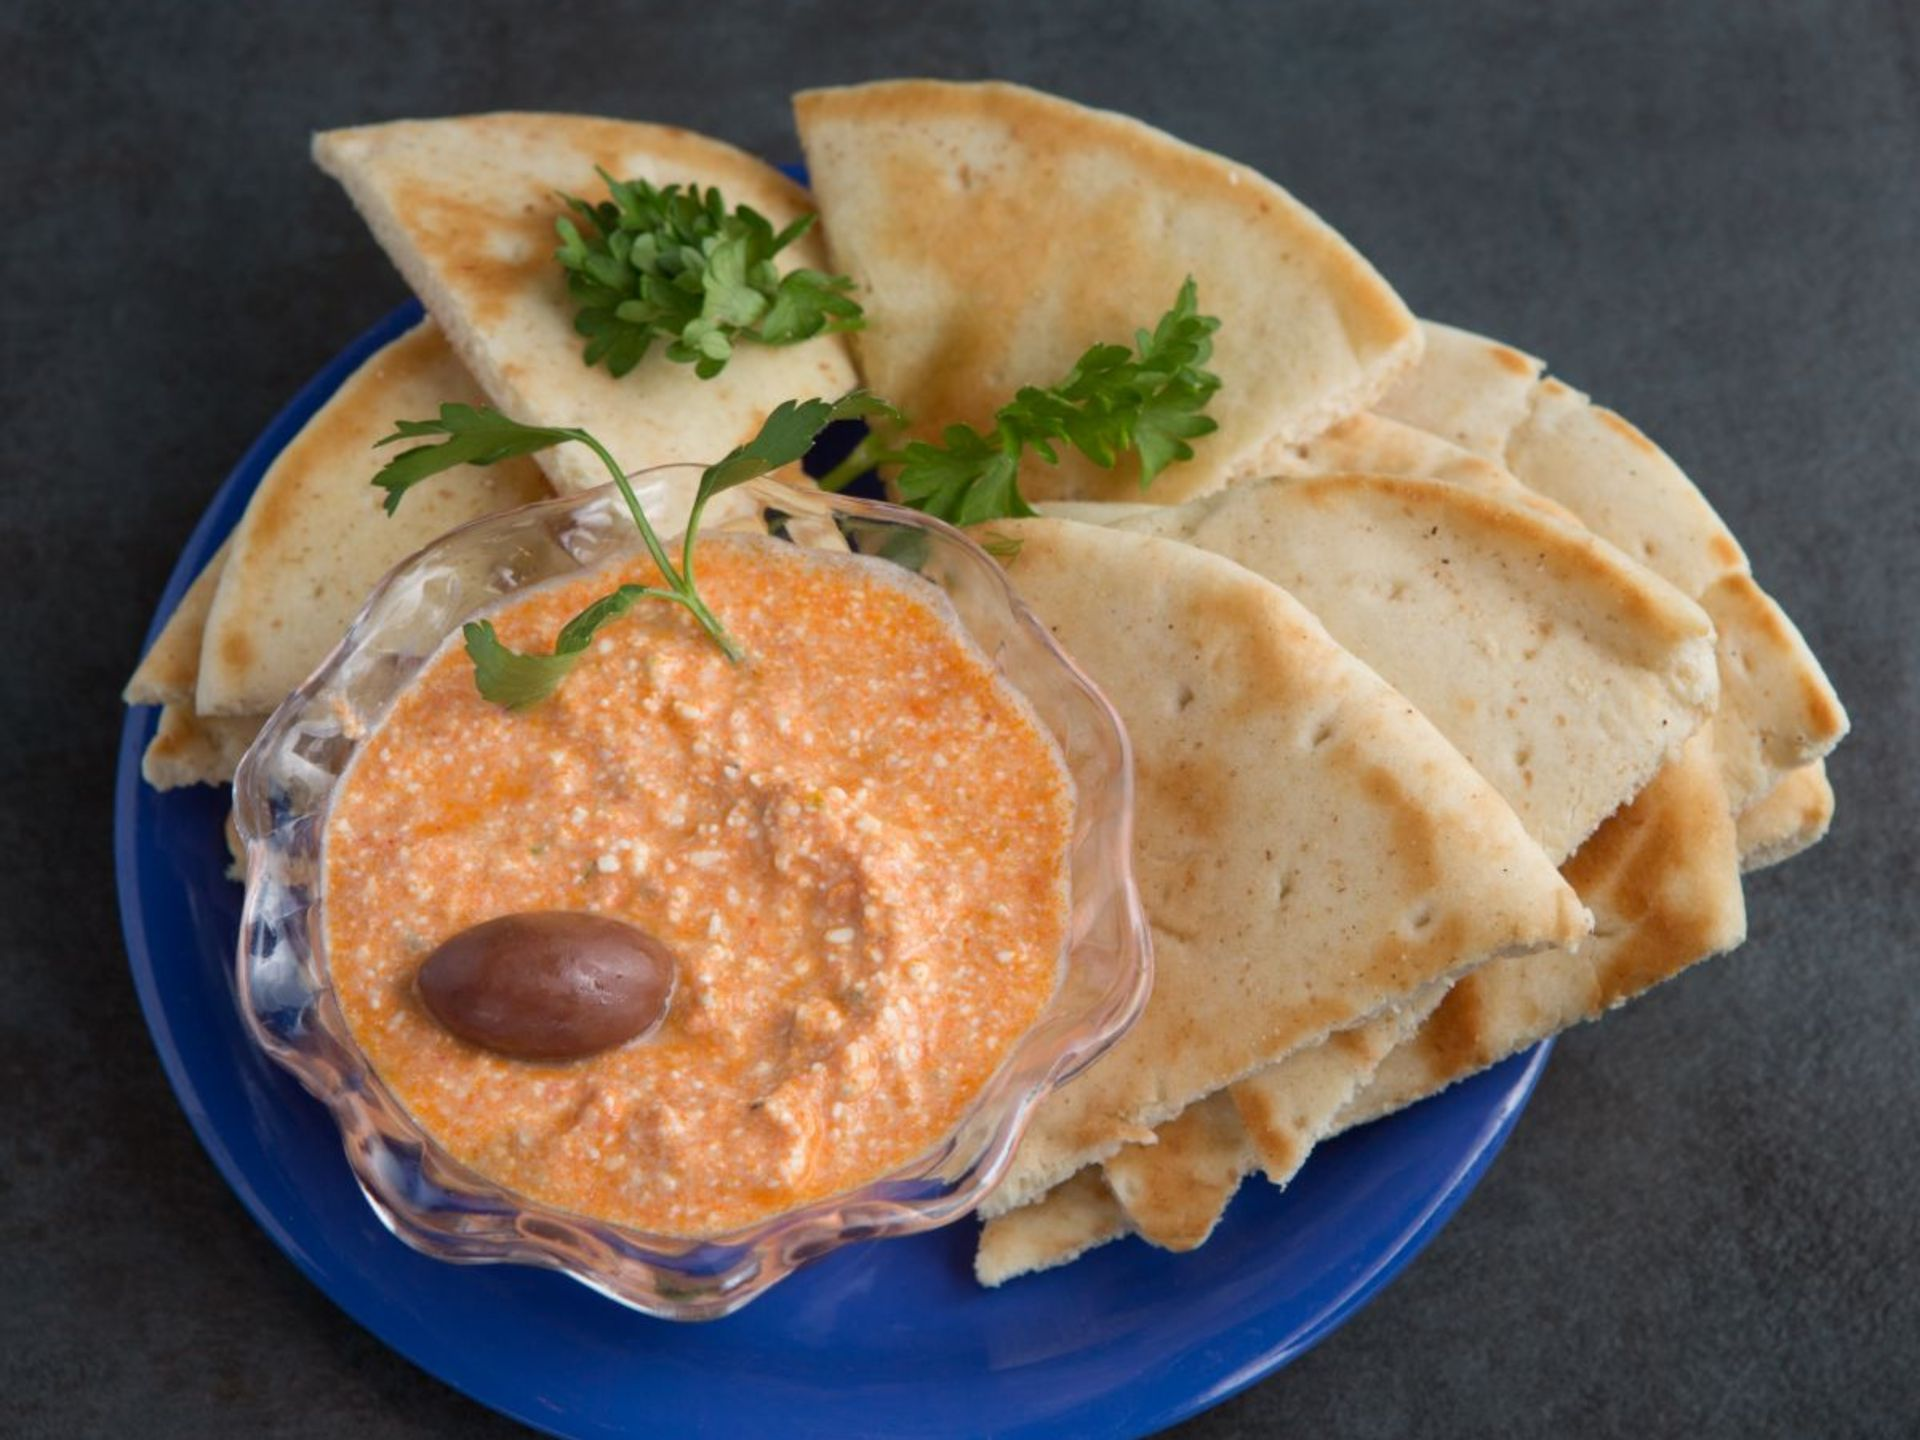 Pita bread on a plate with parsley and a small bowl of hummus